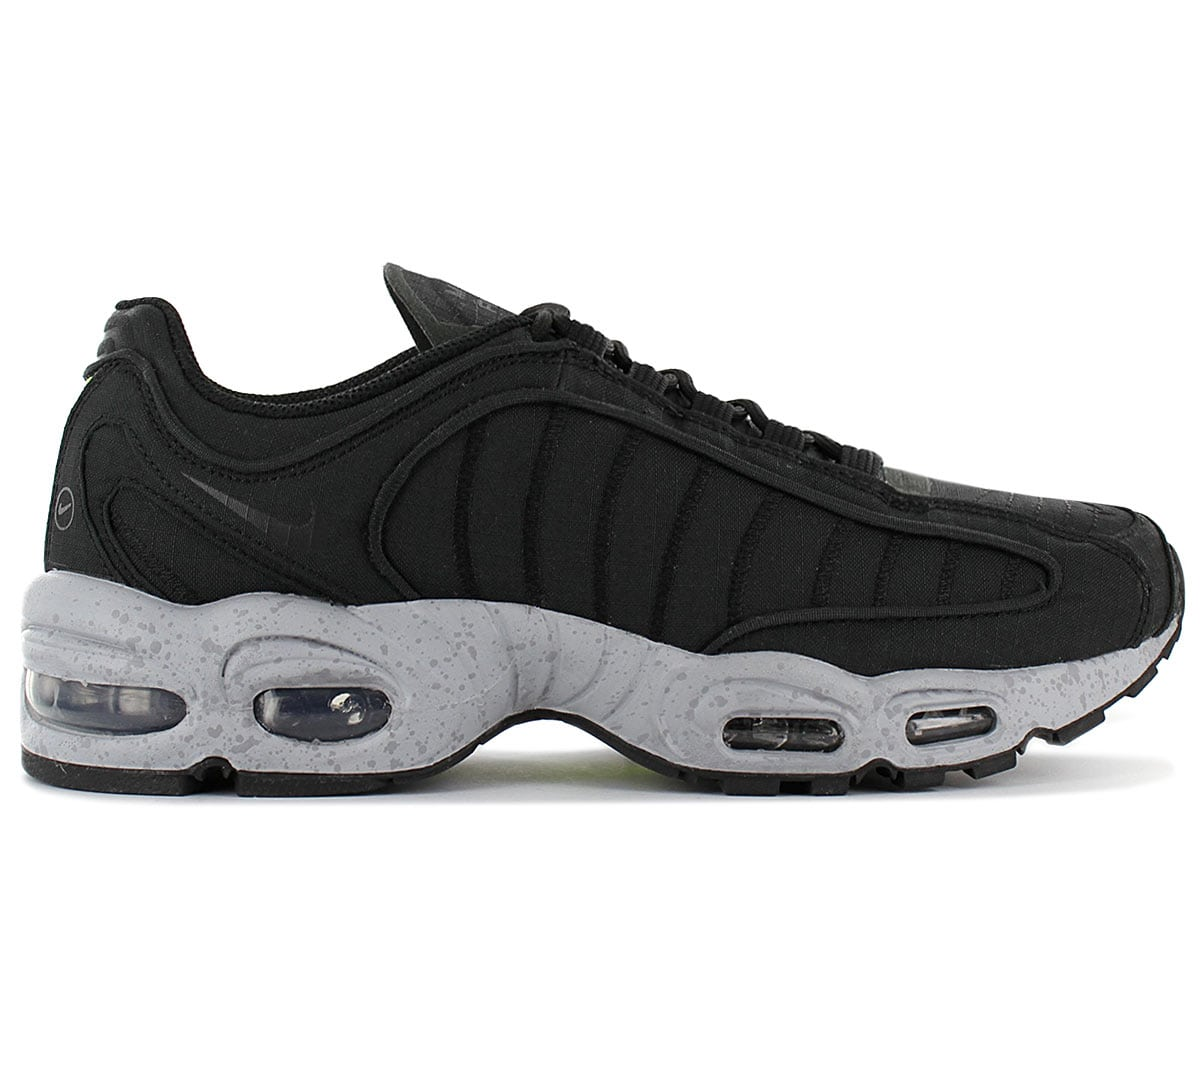 Nike Air Max Tailwind IV SP Ripstop BV1357 002